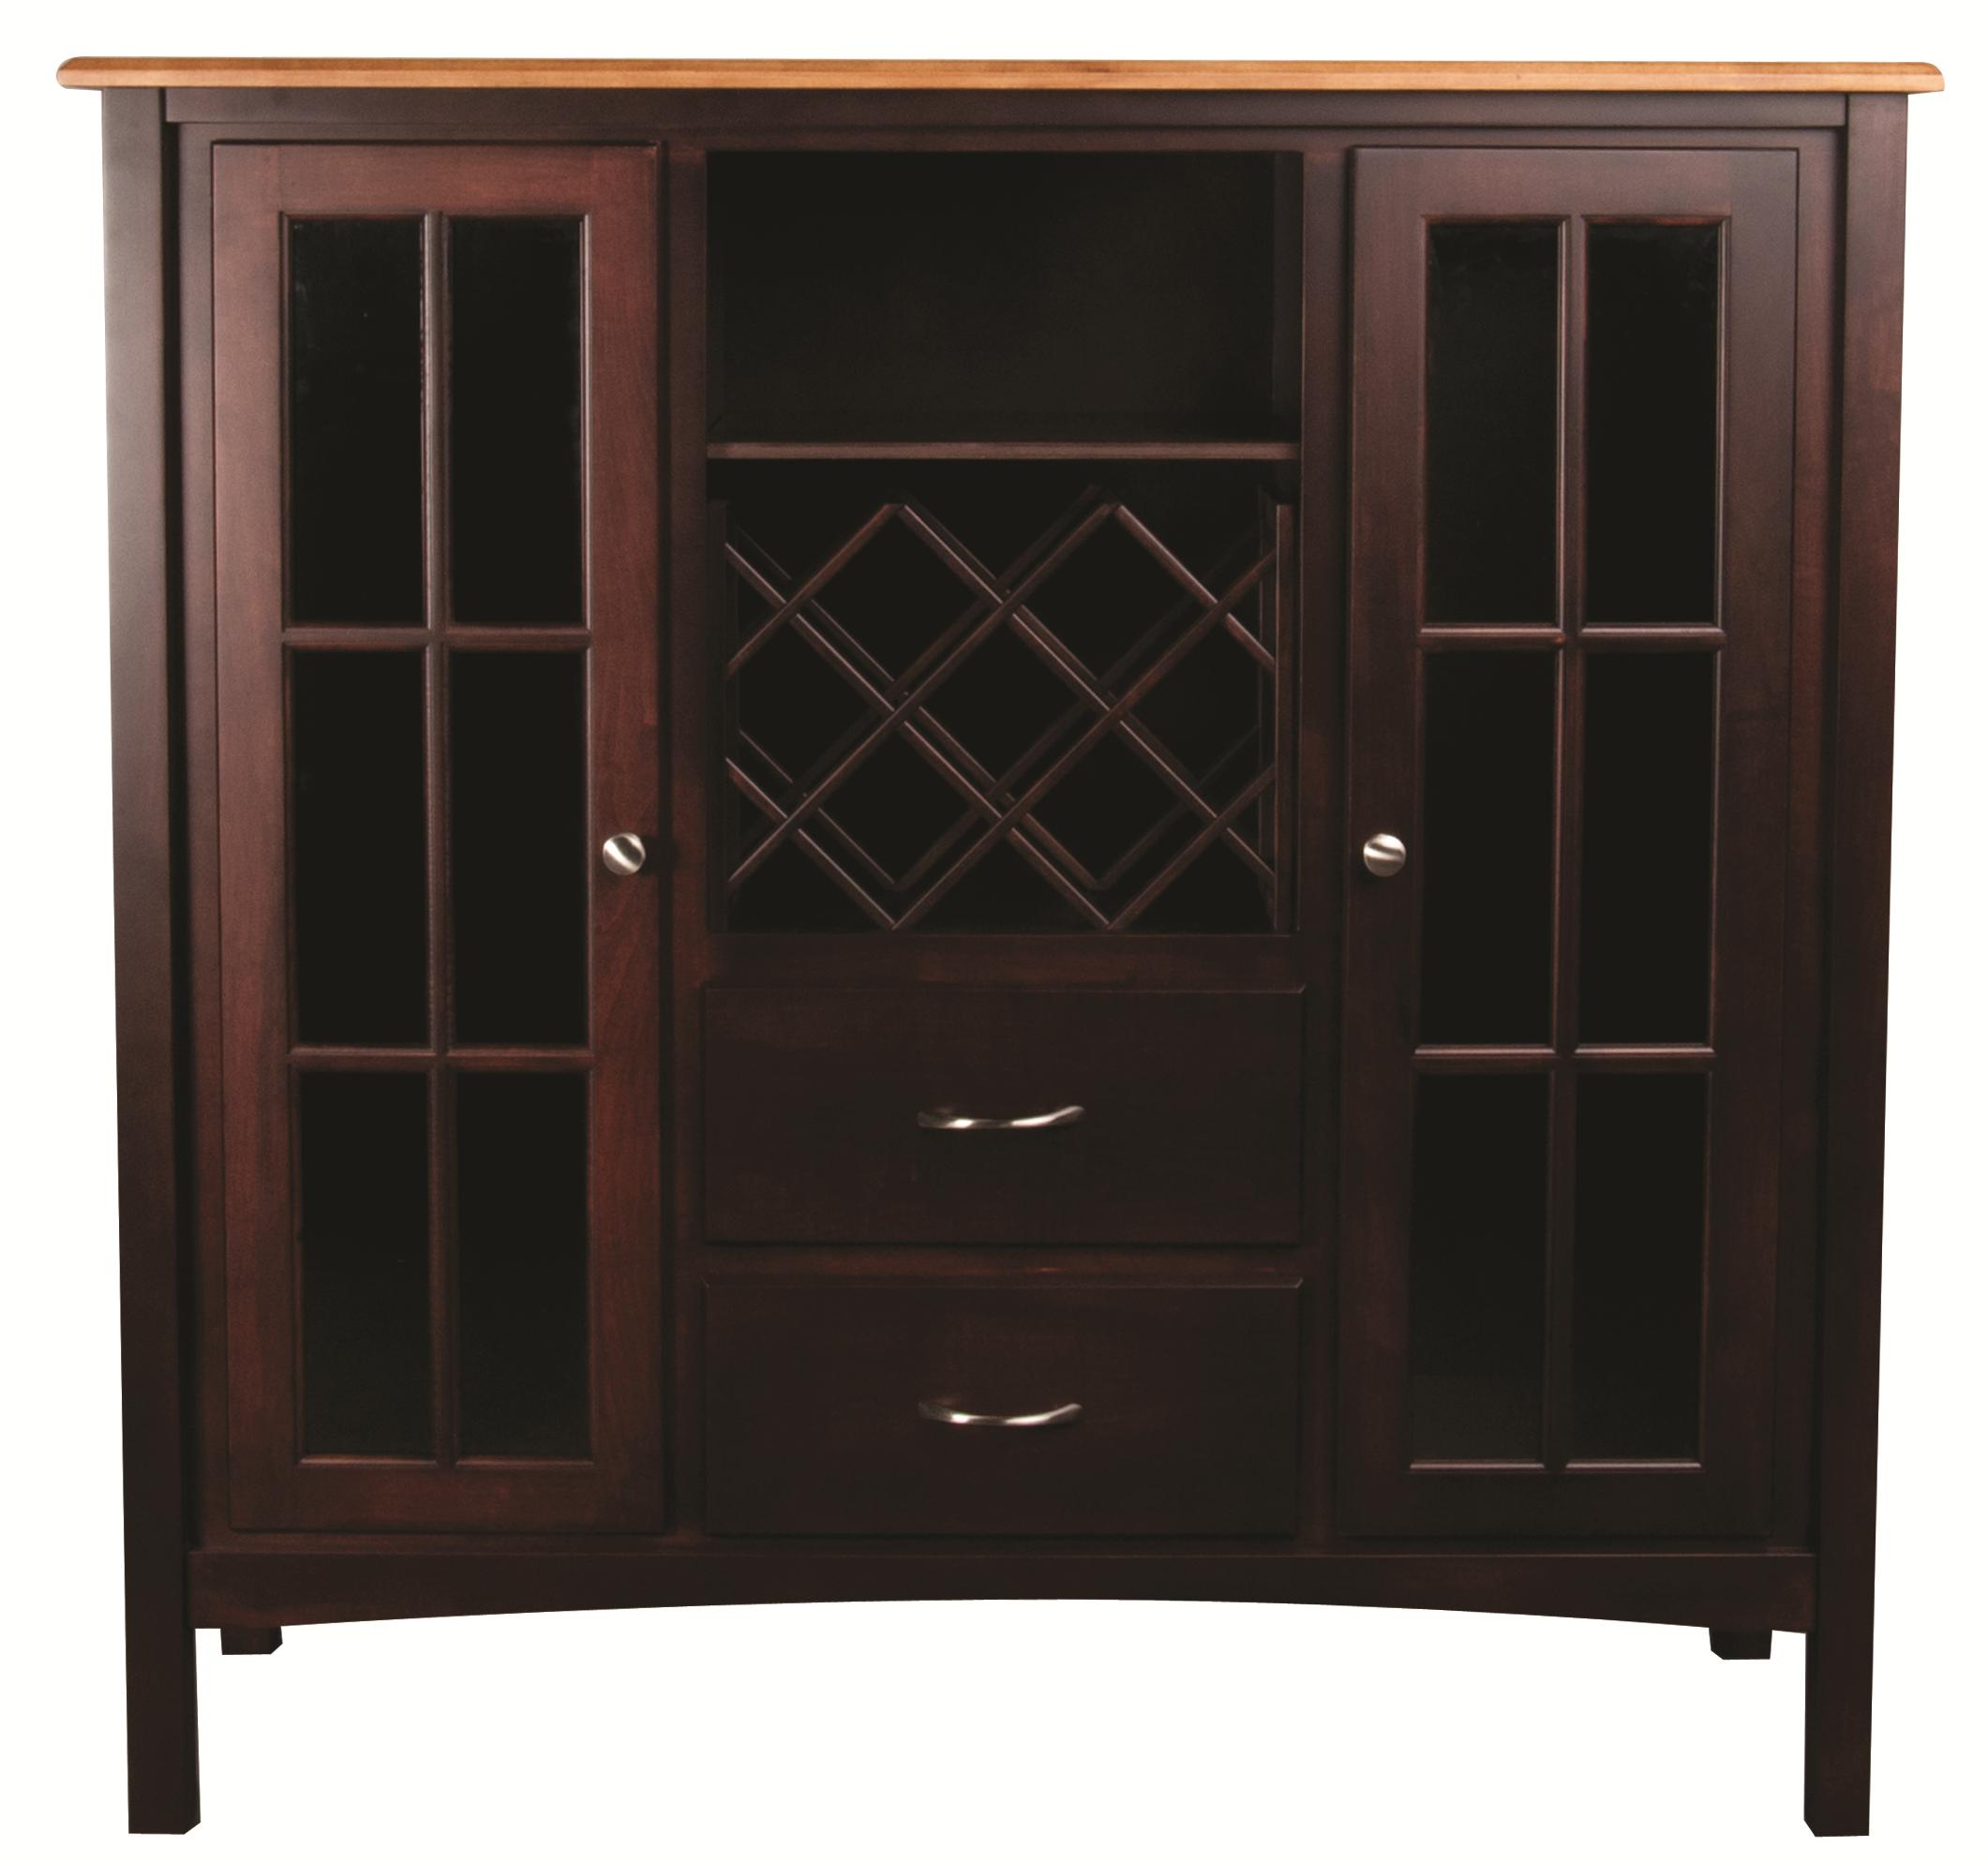 L.J. Gascho Furniture Larkin Larkin Server - Item Number: 4254/5252BWR